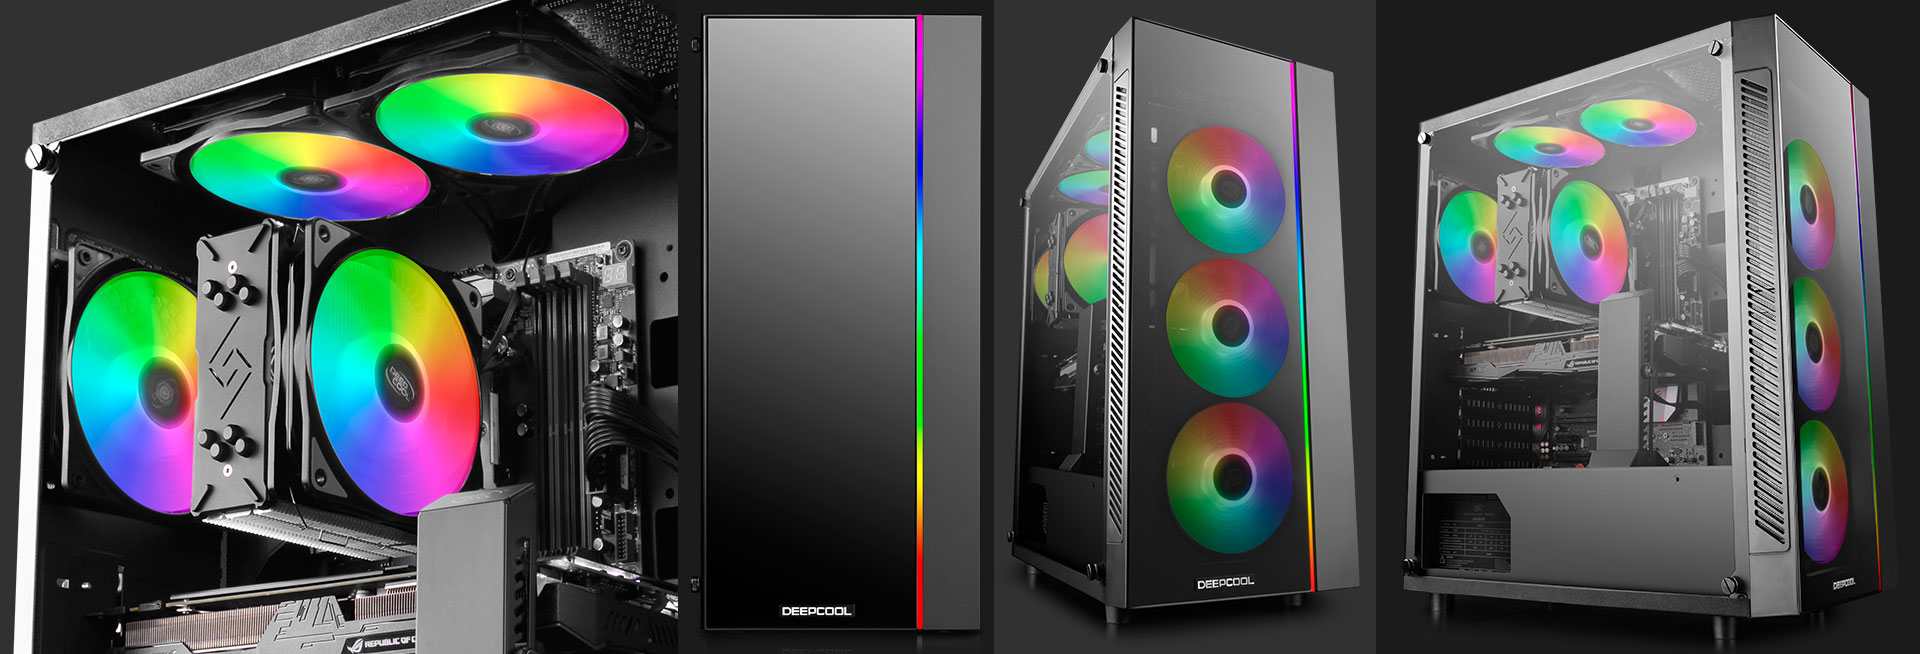 different shots and angles of the deepcool MATREXX 55 case with rainbow RGB-lit fans